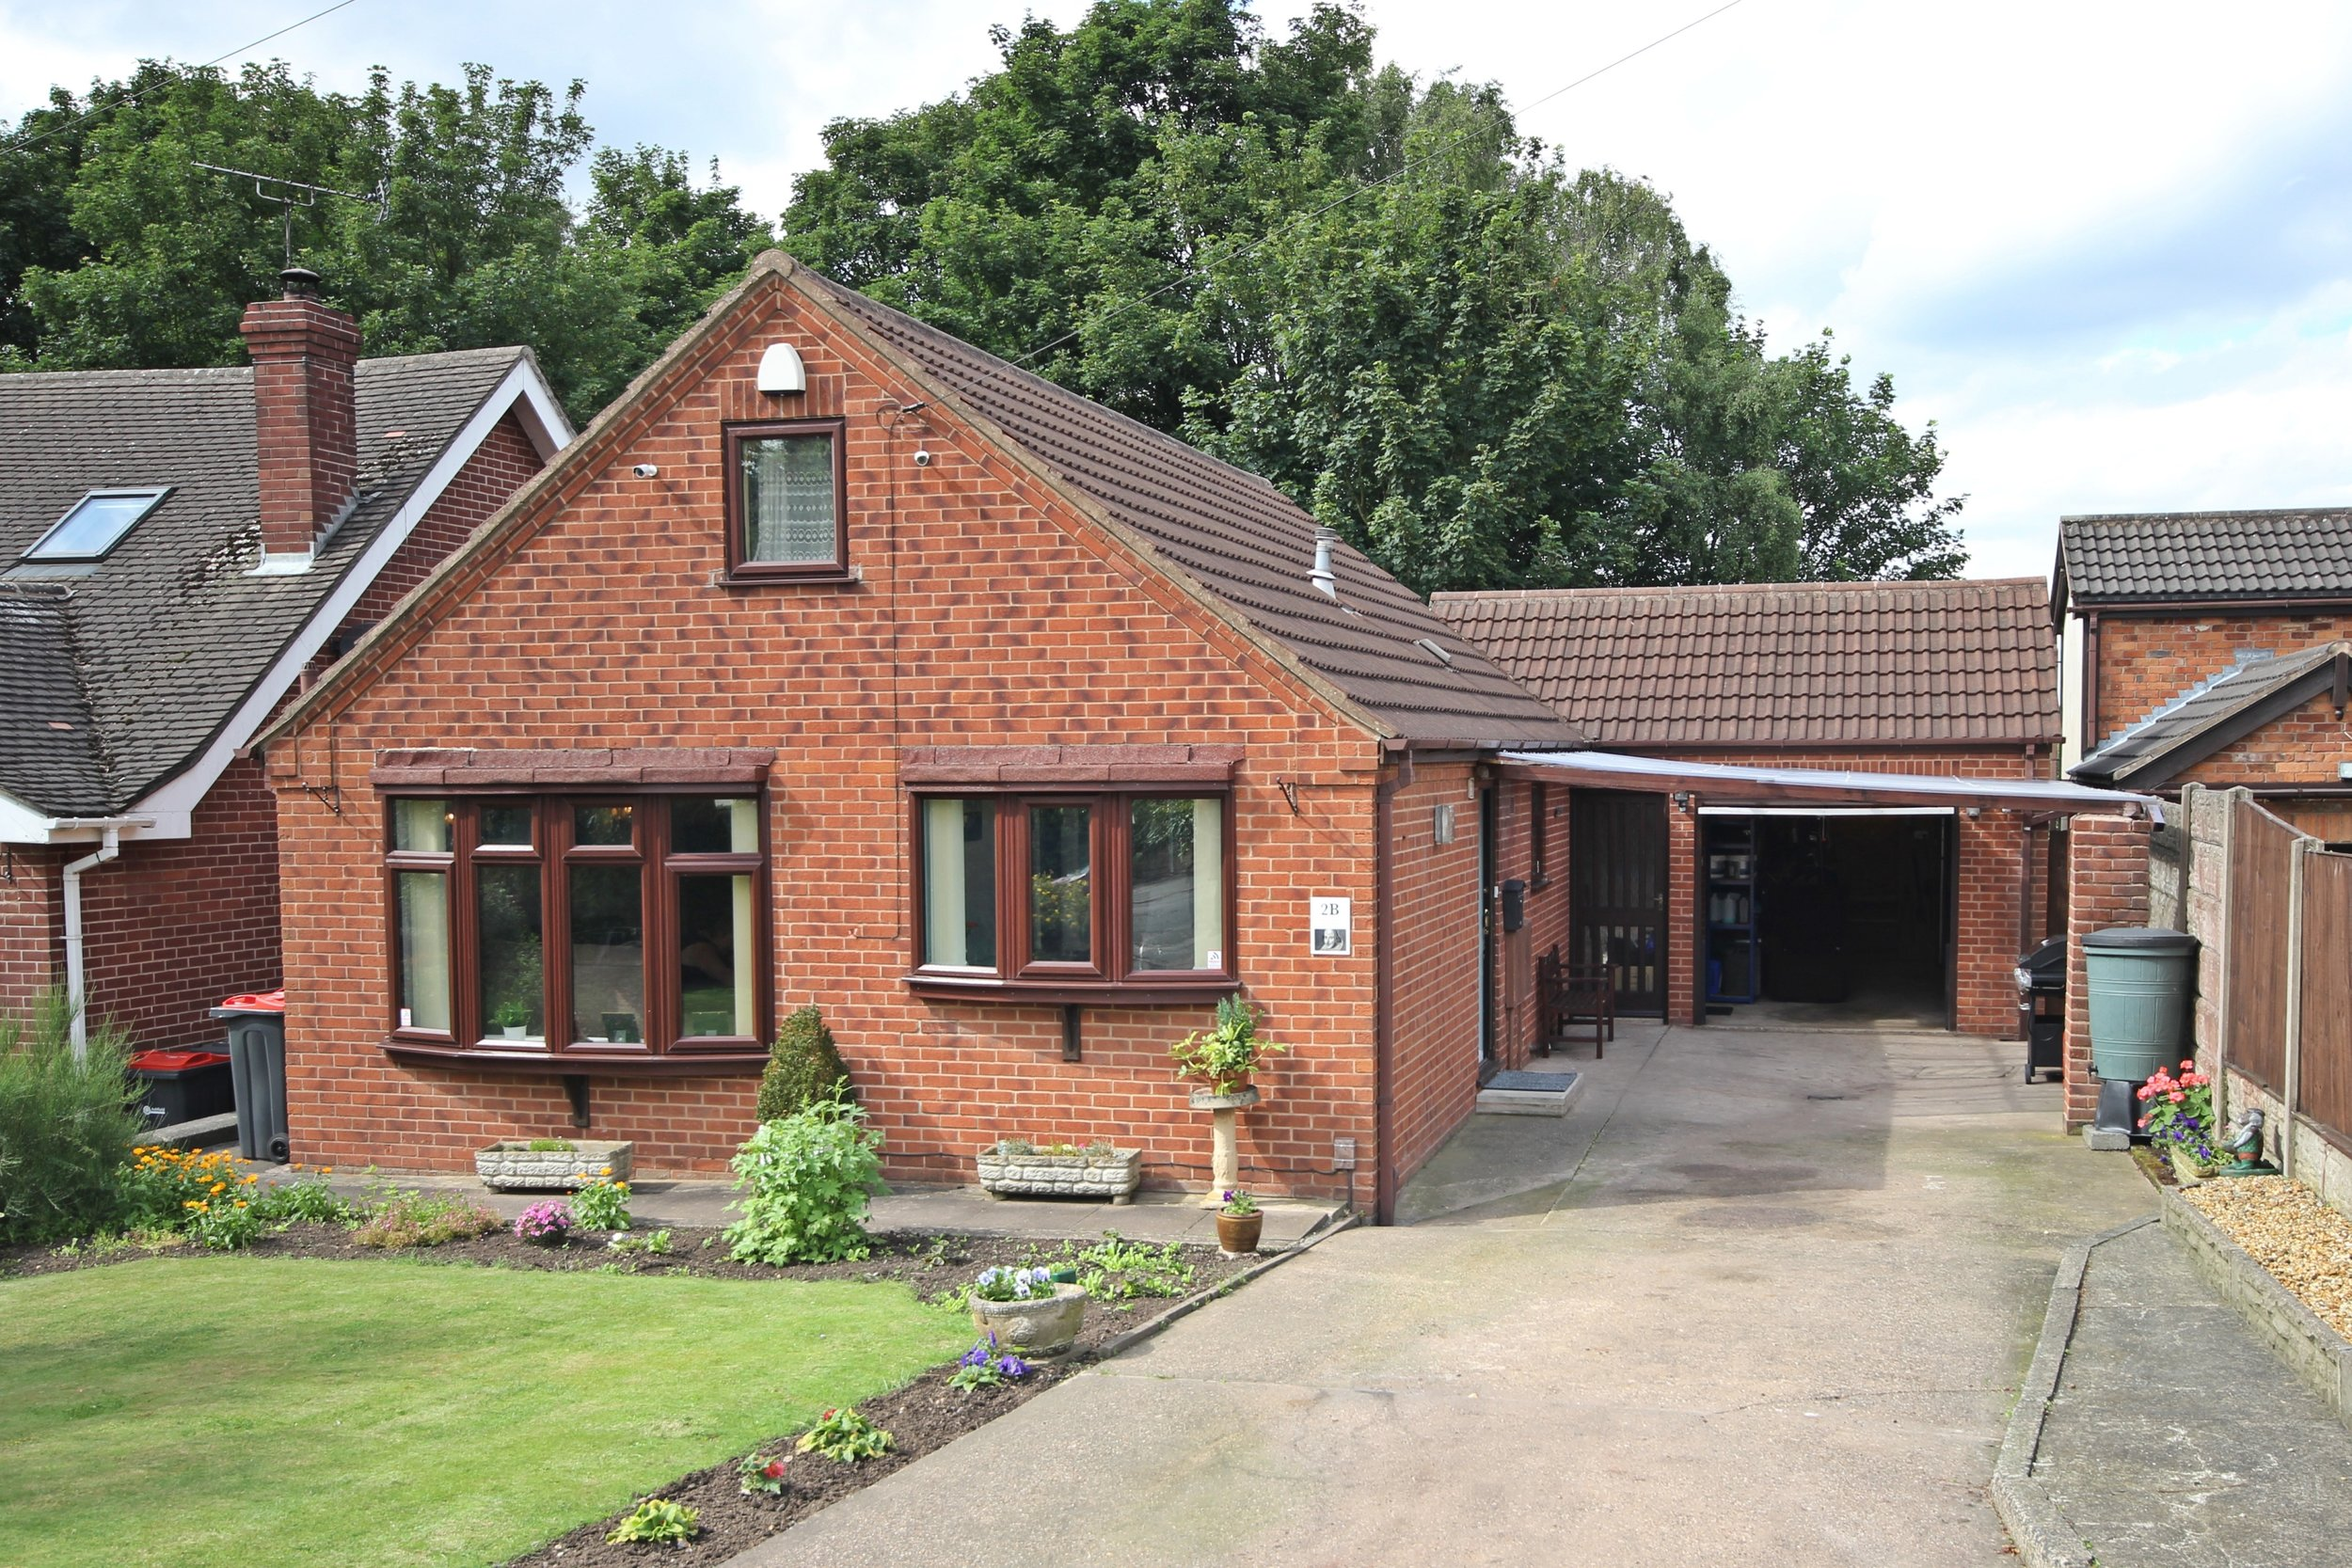 £205,000 Beech Road, Underwood, Nottinghamshire, NG16 5FZ - 2 BEDROOM DETACHED BUNGALOWNO ONWARD CHAIN. A rare find, this immaculately sleek and stylish bungalow in Underwood. Driveway, garage and garden room, spacious lounge, a recently fitted breakfast kitchen, two double bedrooms and gardens to front and rear. EPC rating D.